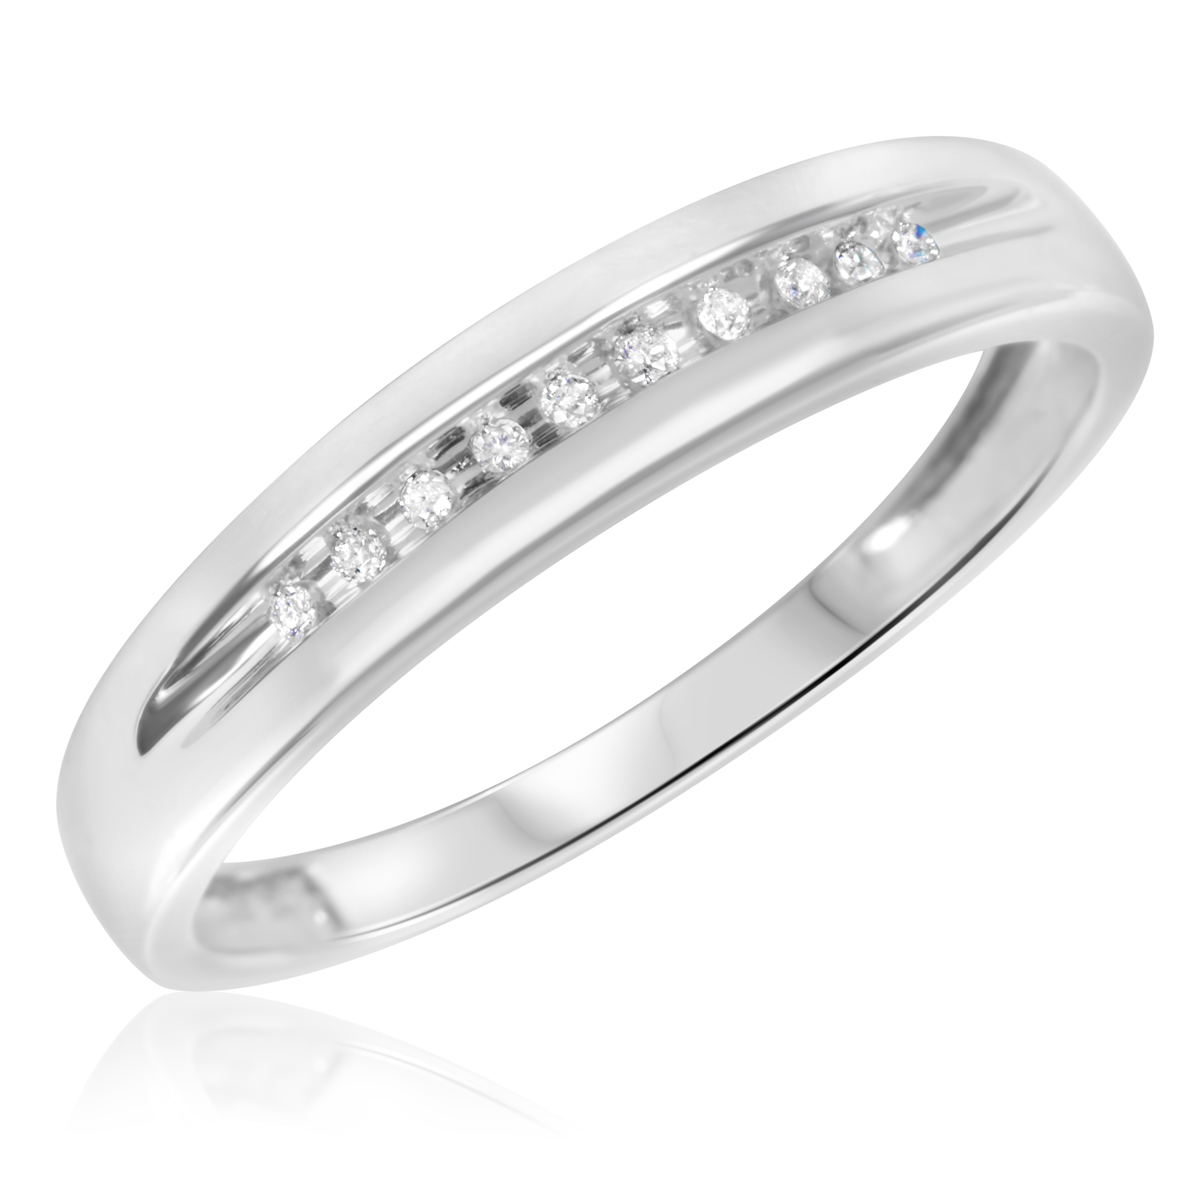 28 diamond wedding bands wedding band with diamonds Affordable Round Diamond Wedding Band in Two Tone Gold